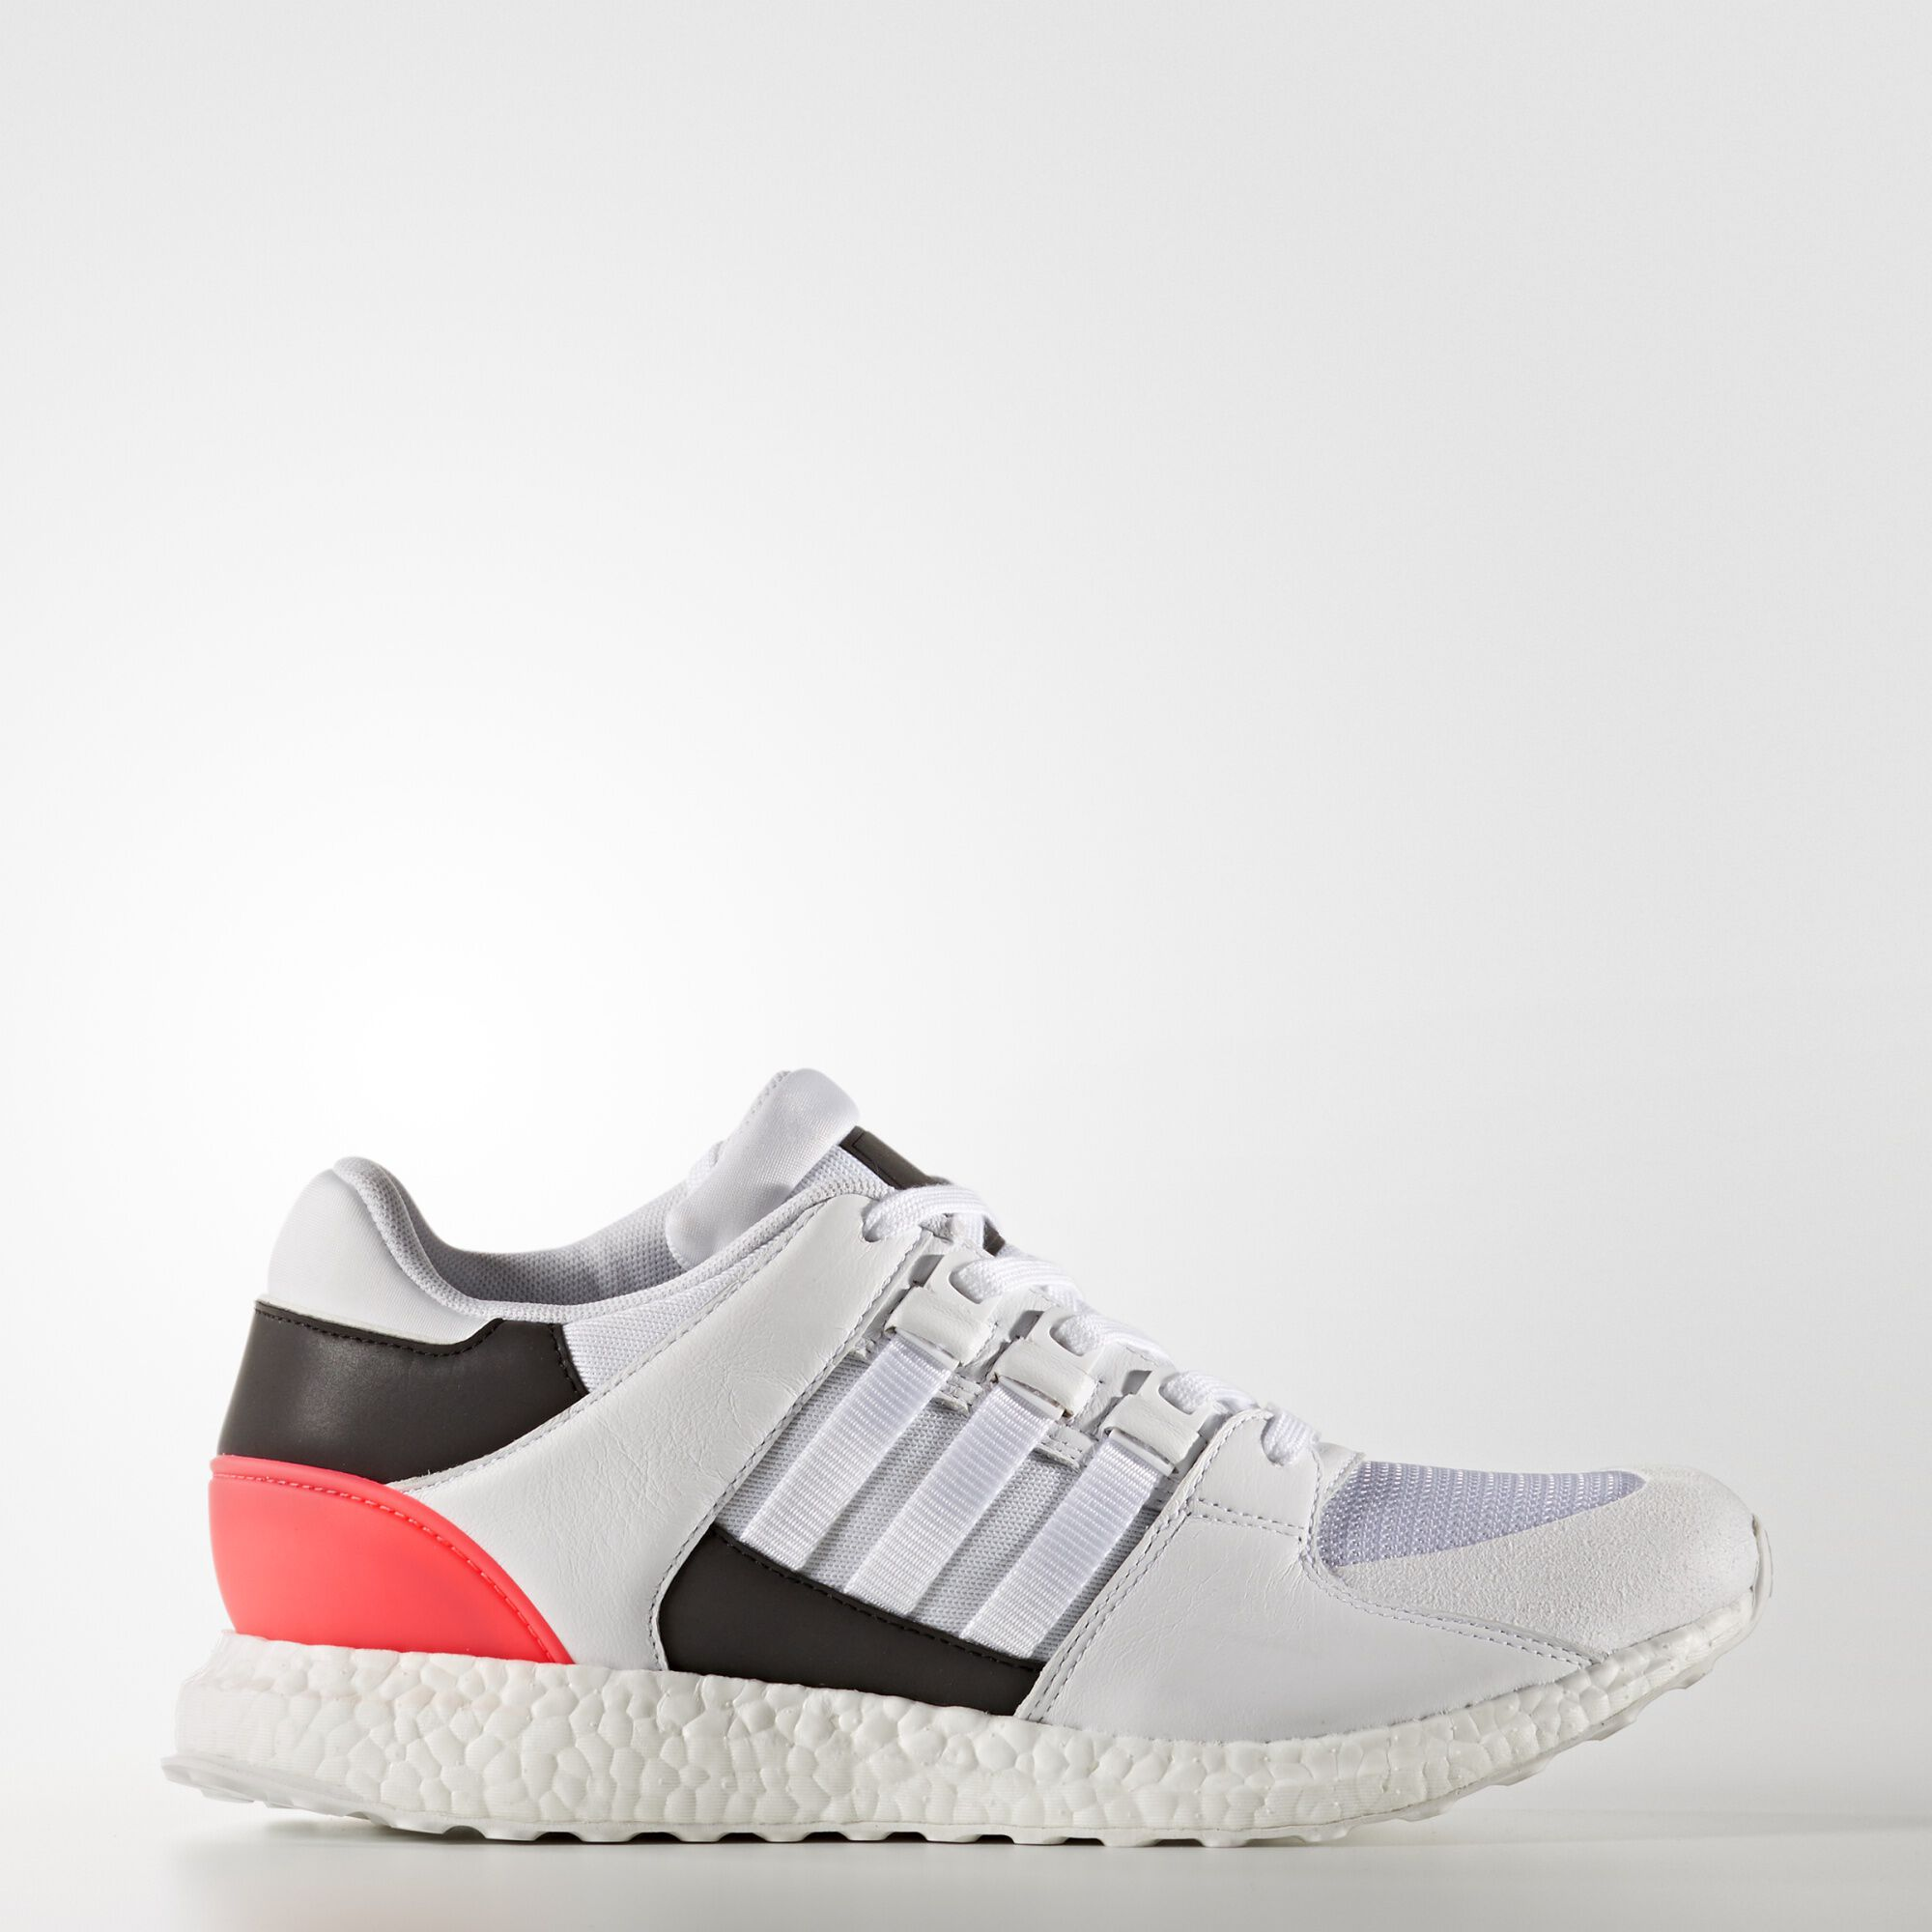 adidas EQT Support 93/17 White/Royal BZ0592